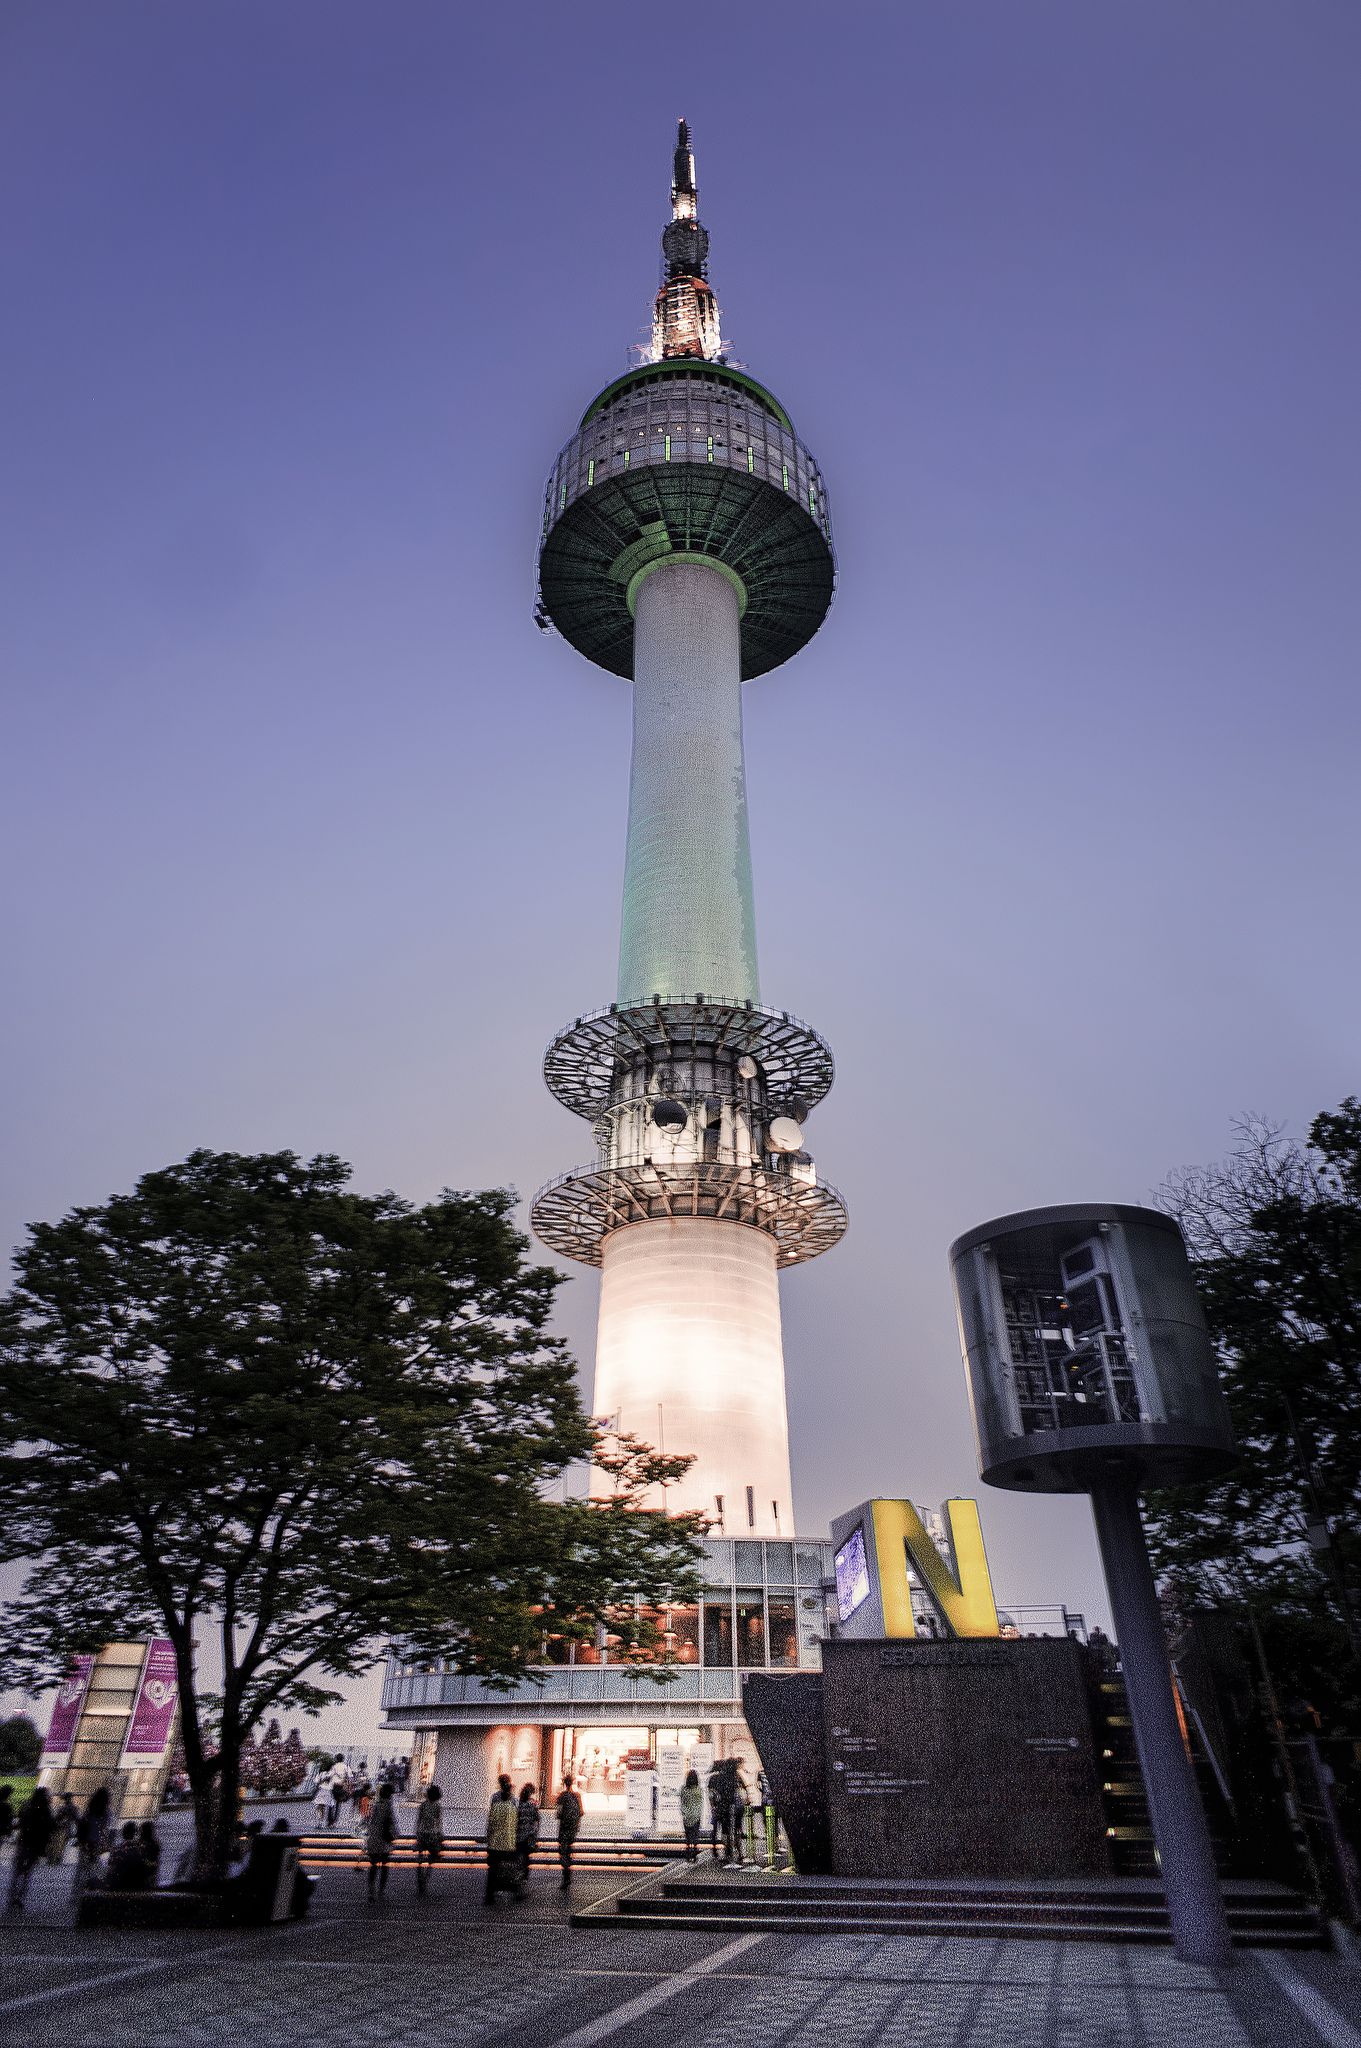 N Seoul Tower on Mt. Namsan